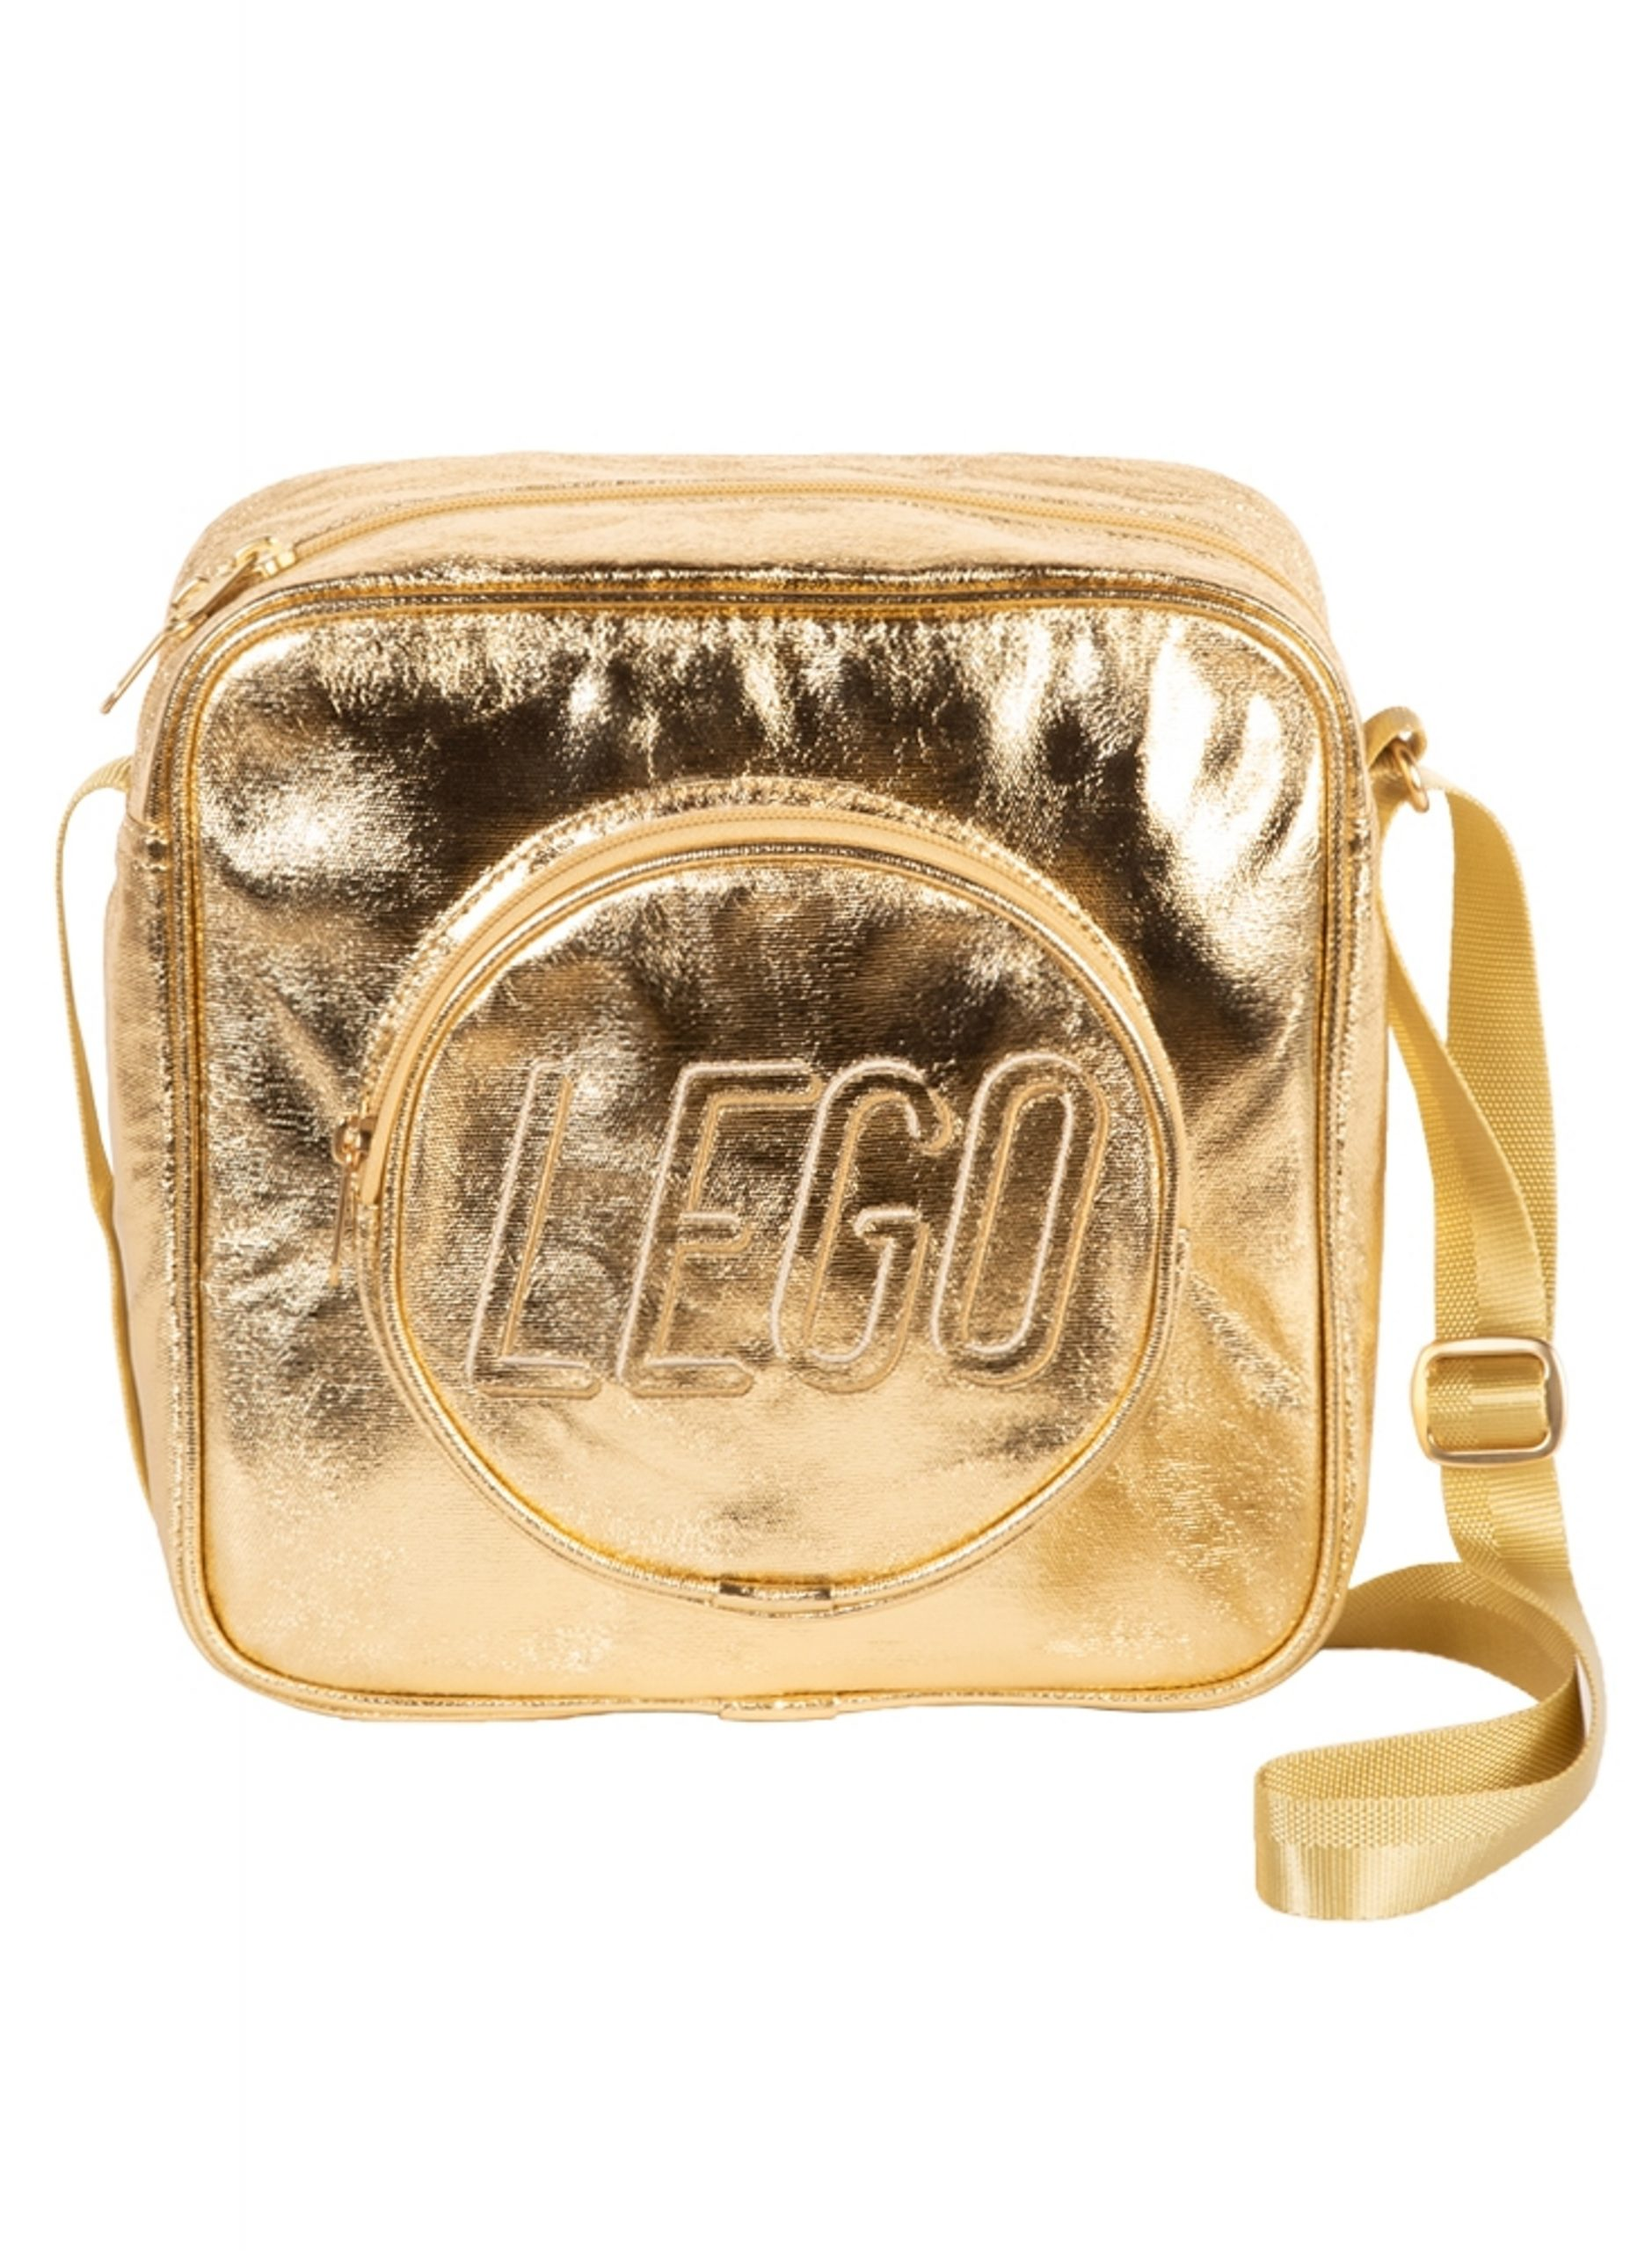 lego 5005816 gold brick crossbody bag scaled